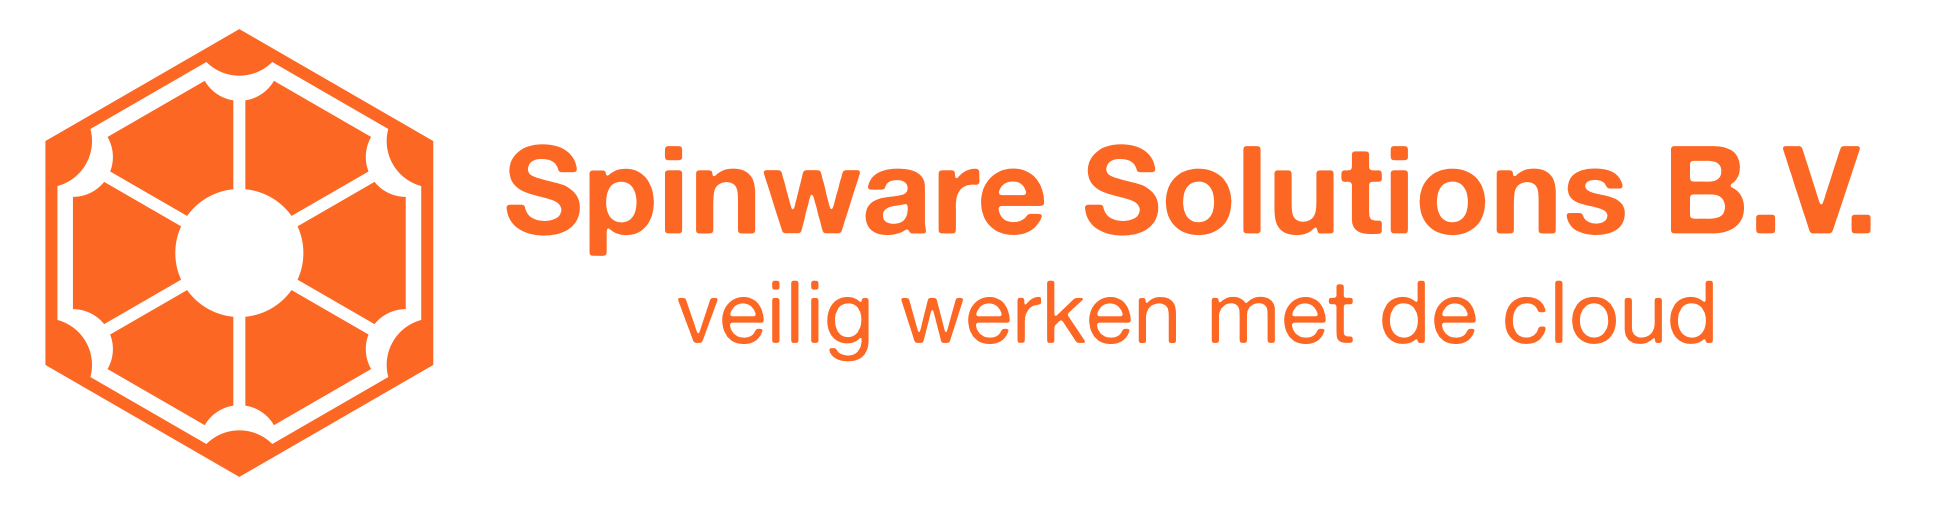 Spinware Solutions